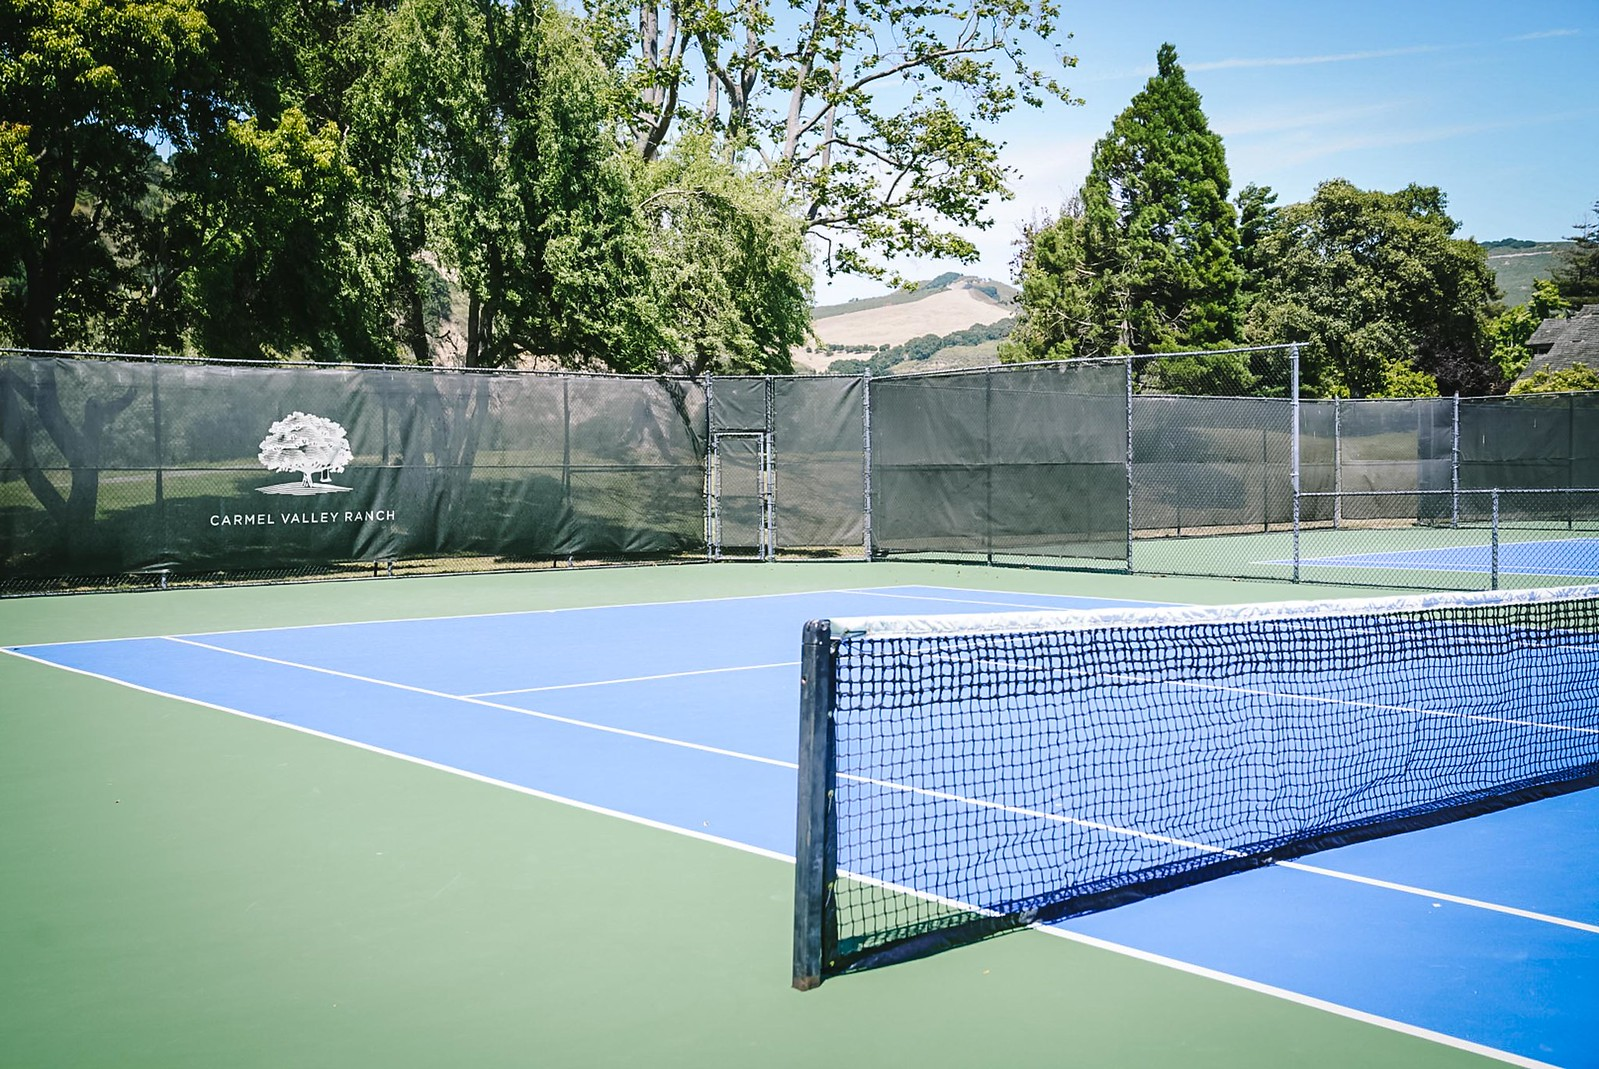 Carmel Valley ranch tennis courts